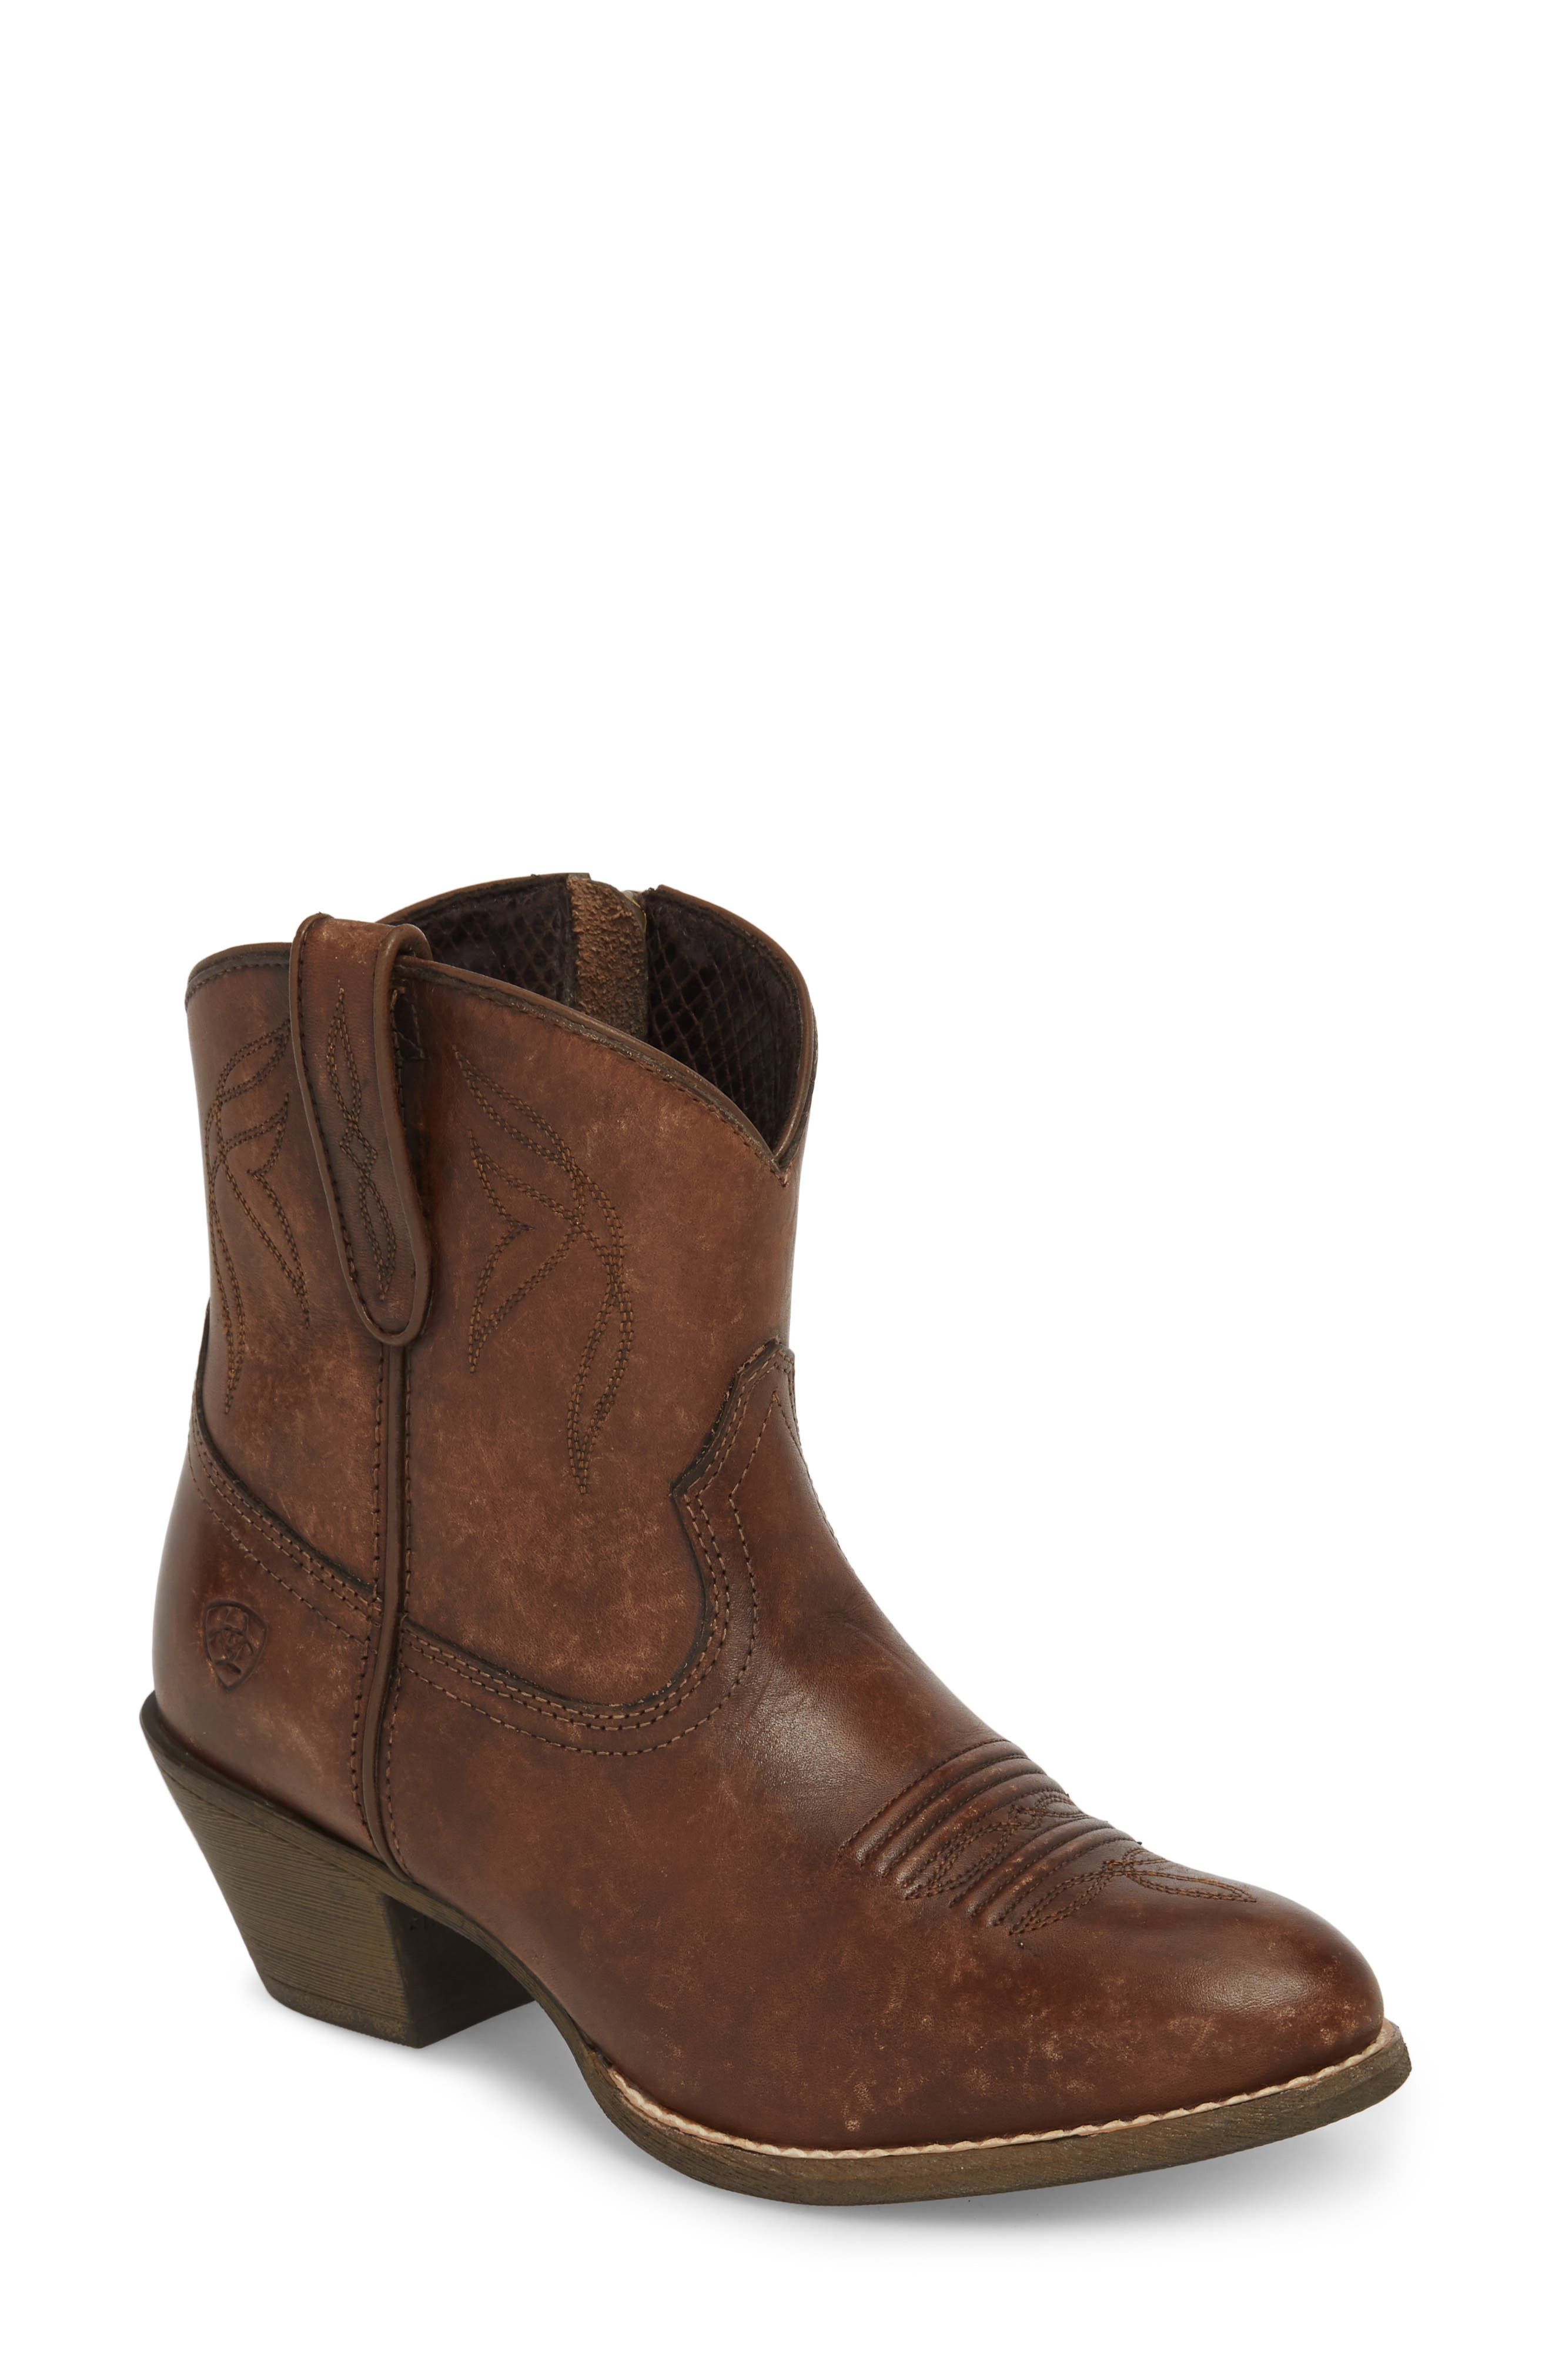 Darlin Short Western Boot,                             Main thumbnail 1, color,                             Distressed Brown Leather